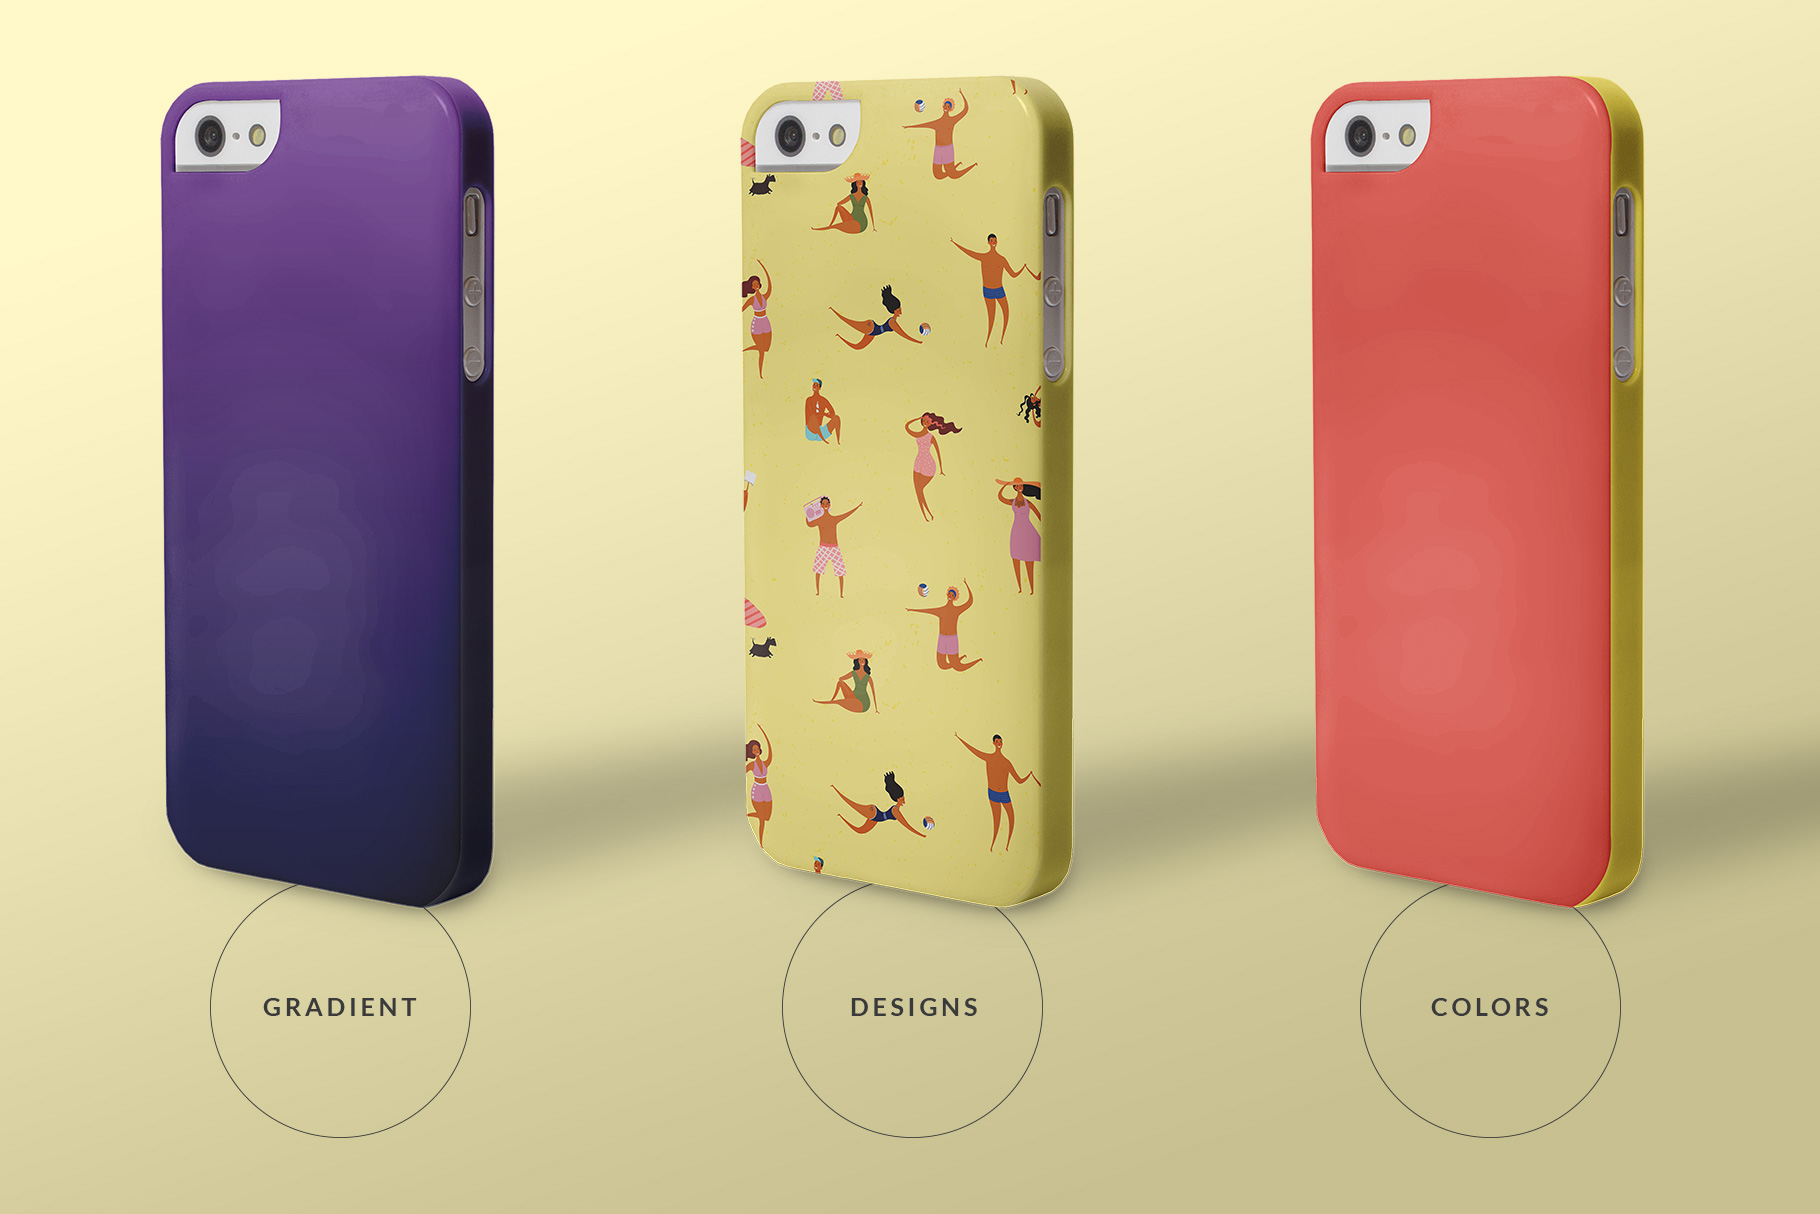 types of the iphone snap backcase mockup